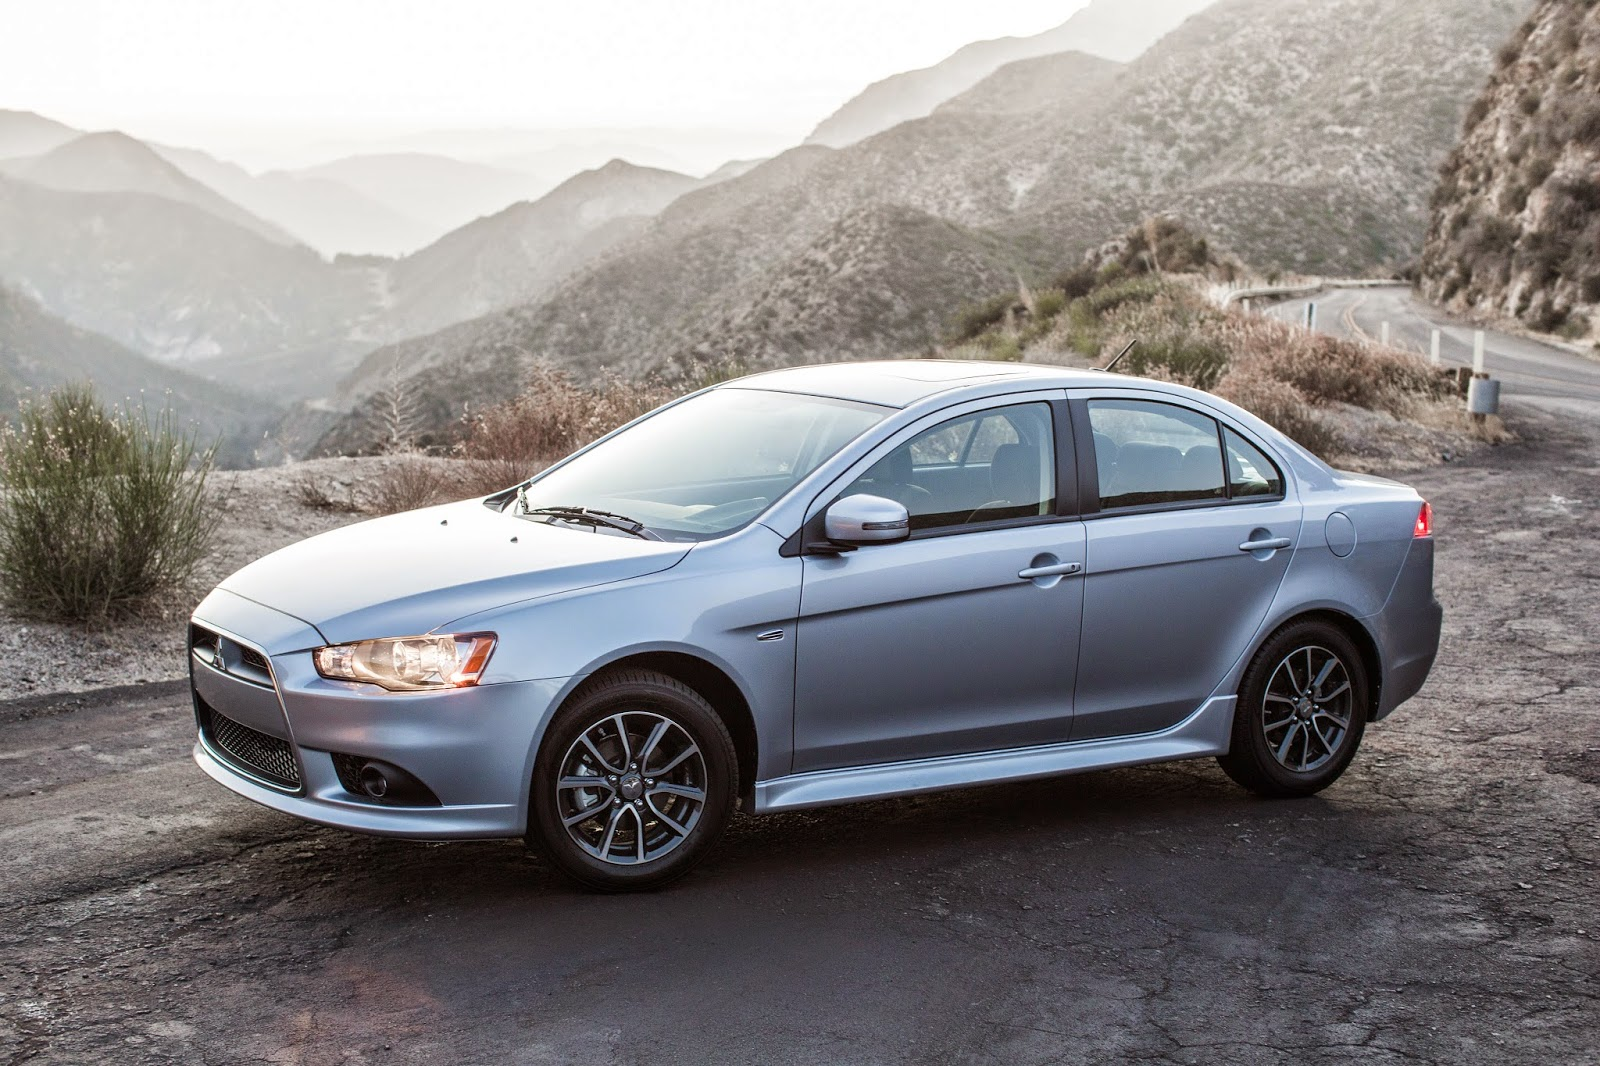 Front 3/4 view of 2015 Mitsubishi Lancer SE